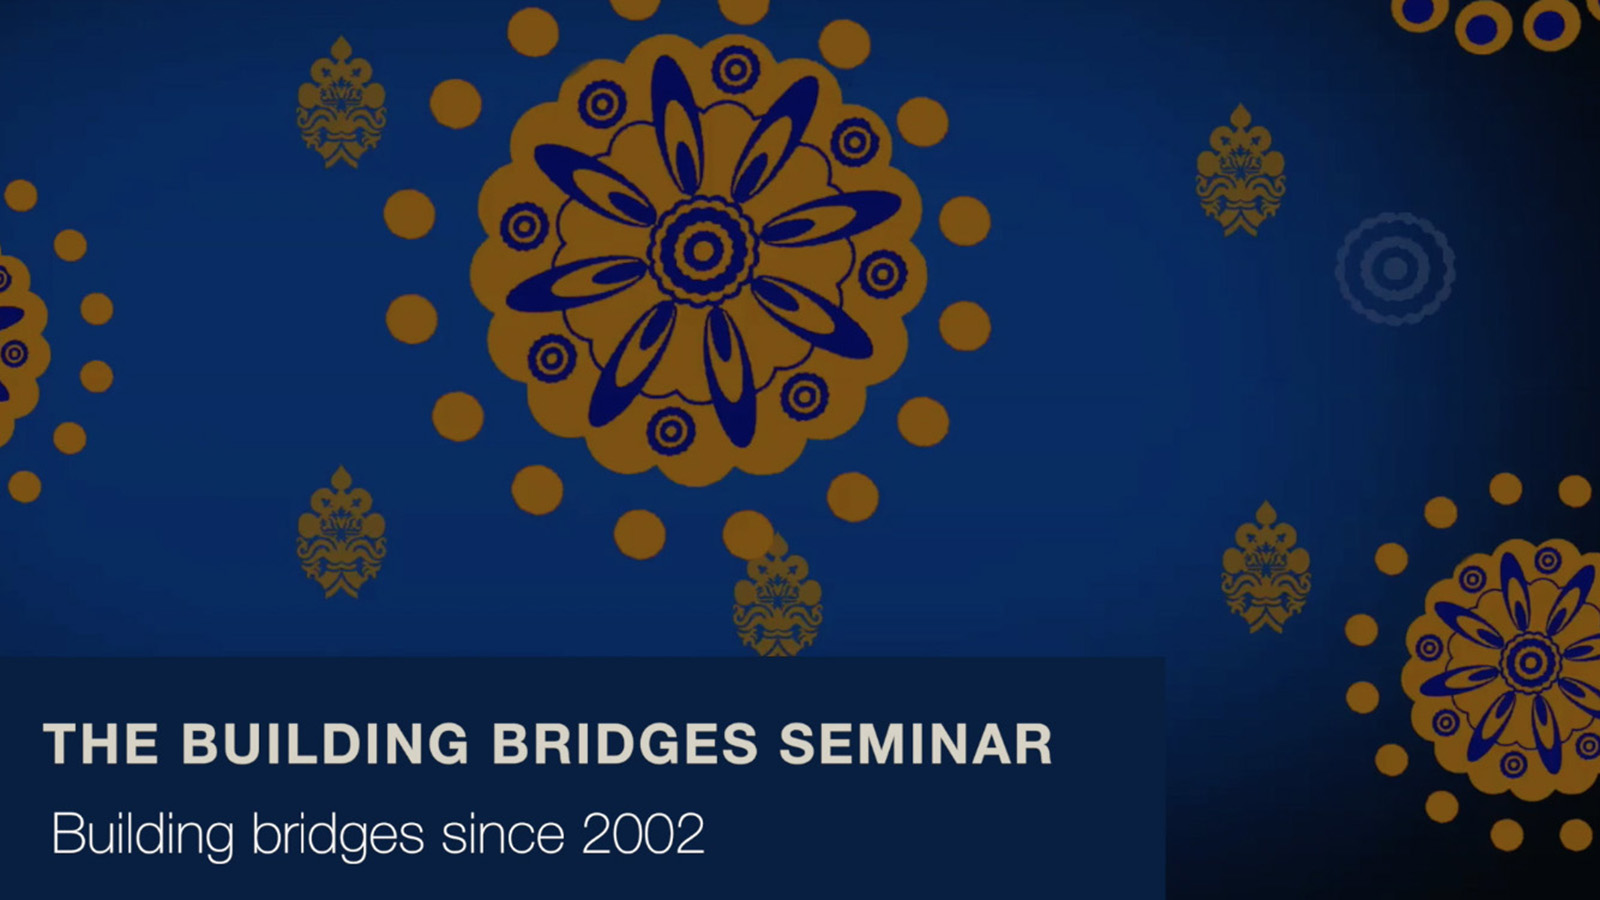 """The Building Bridges Seminar: Building bridges since 2002"" on blue and yellow patterned background"